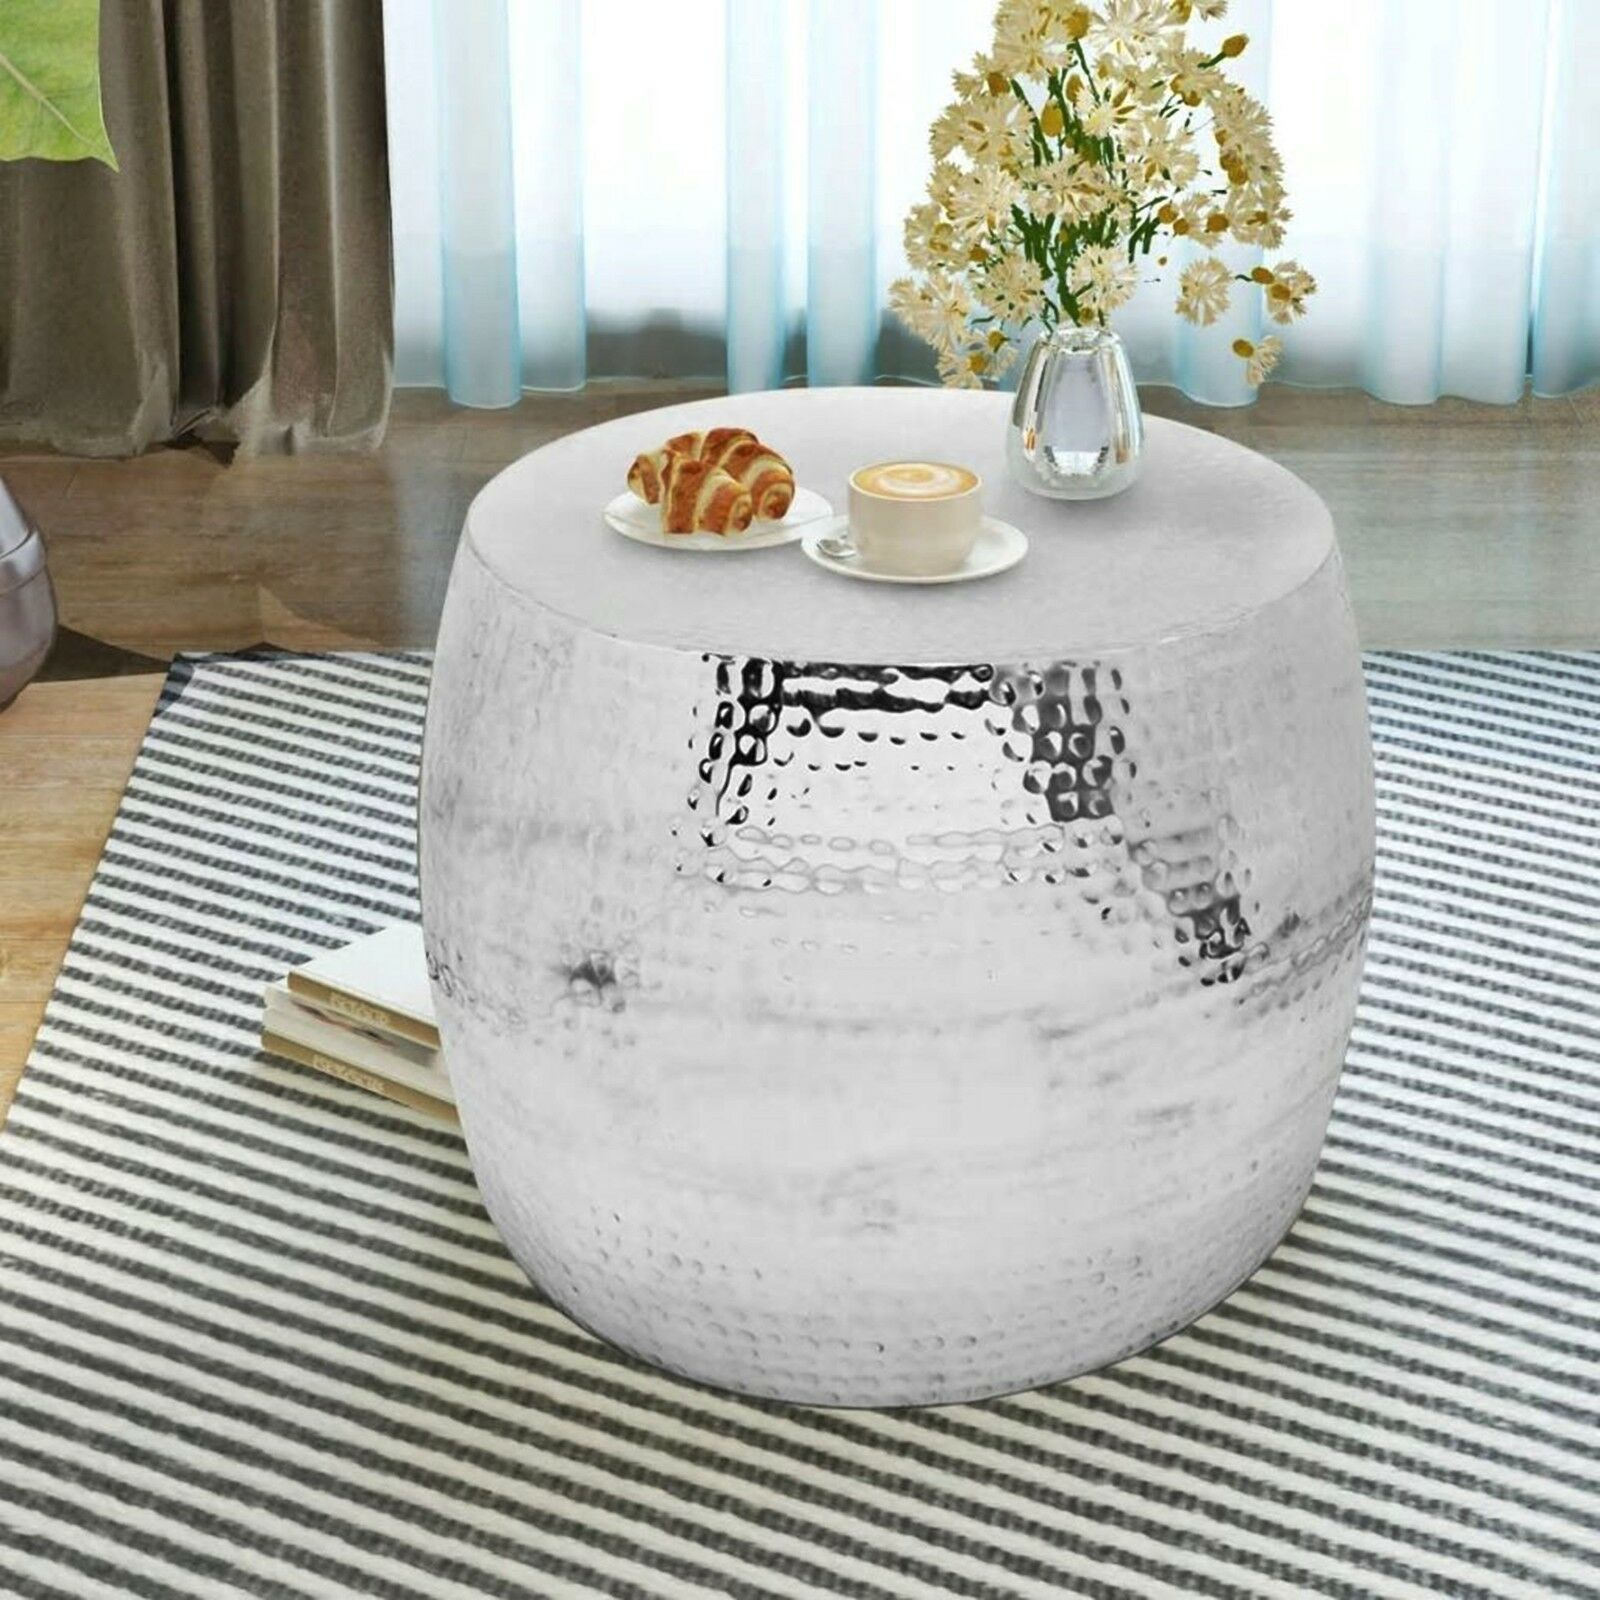 Drum Shaped Coffee Table.Details About Metal Silver Coffee Table Drum Shaped Side Sofa Unit Vintage Room End Lamp Stand